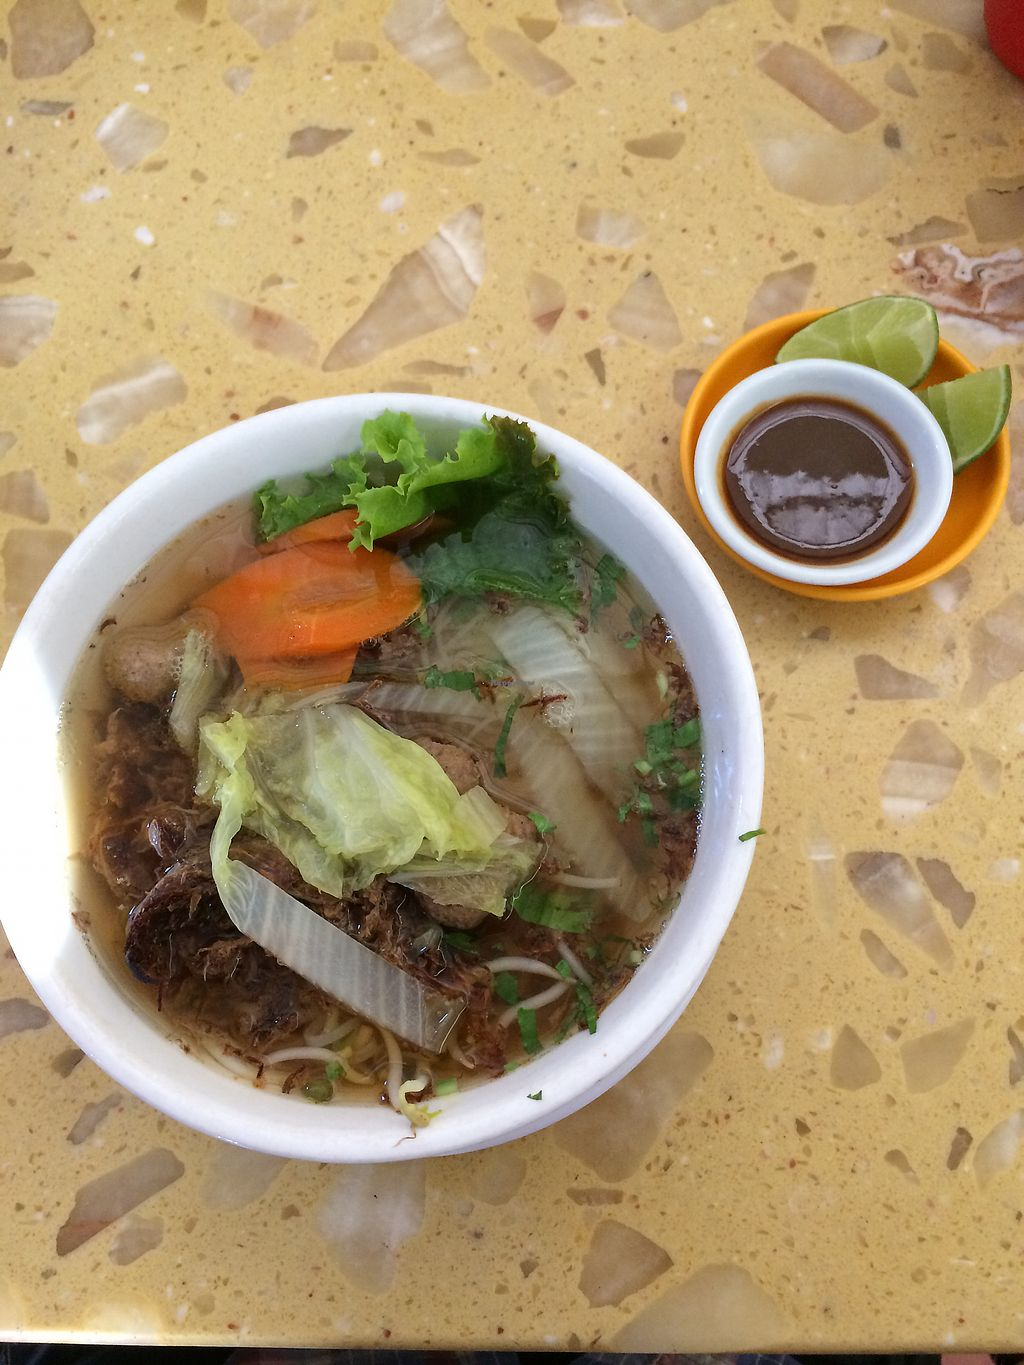 """Photo of Sir Si Pha  by <a href=""""/members/profile/Astrocake"""">Astrocake</a> <br/>Noodle soup with shredded mock meat and meatballs  <br/> December 17, 2017  - <a href='/contact/abuse/image/45502/336350'>Report</a>"""